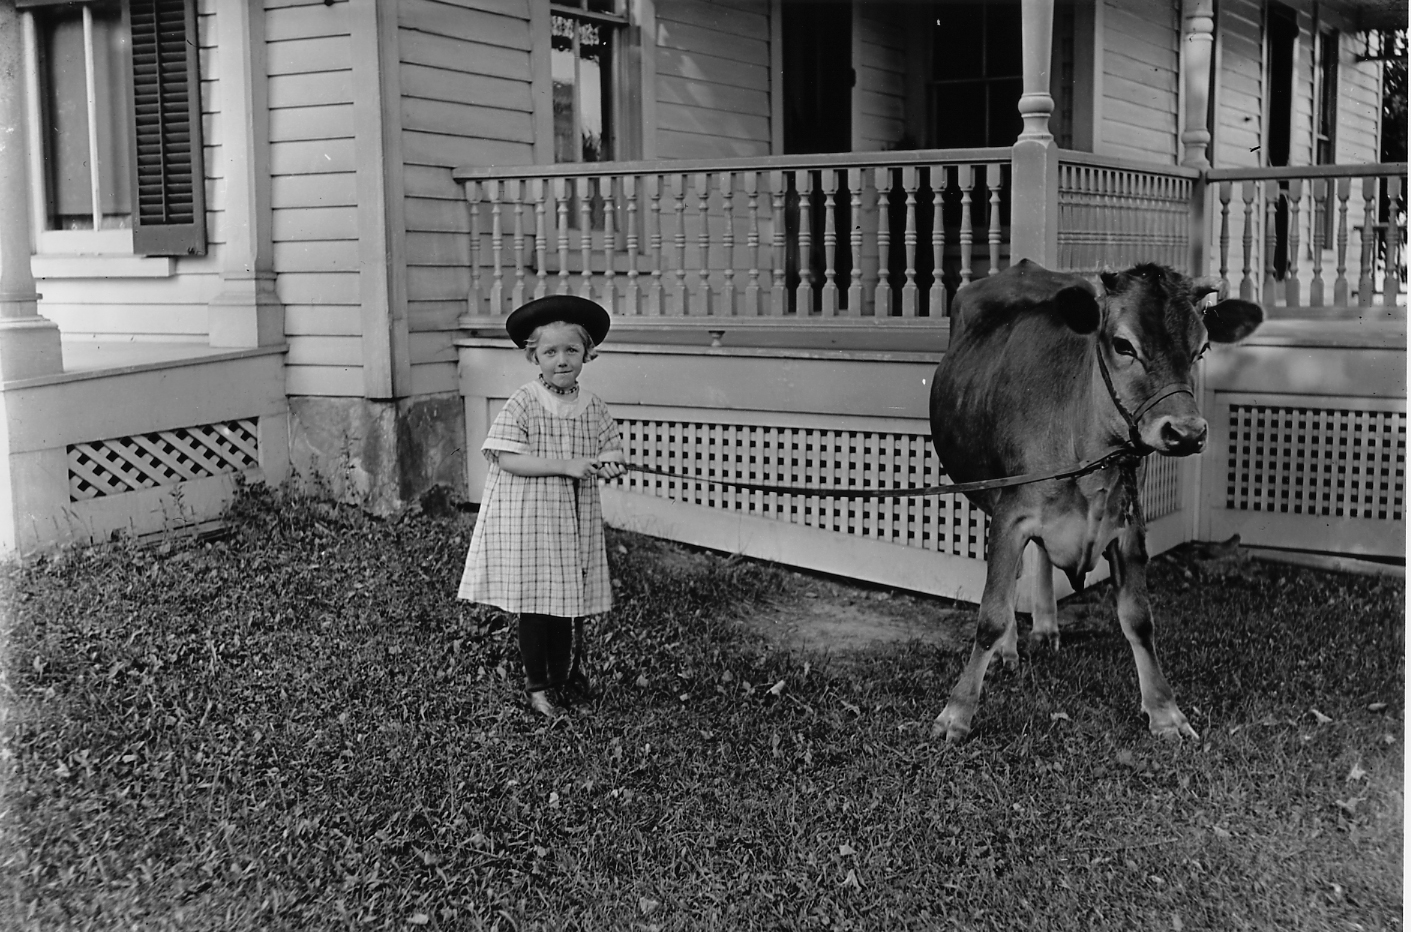 Image of little girl in a plaid dress holding leadline of calf, standing next to porch of a house